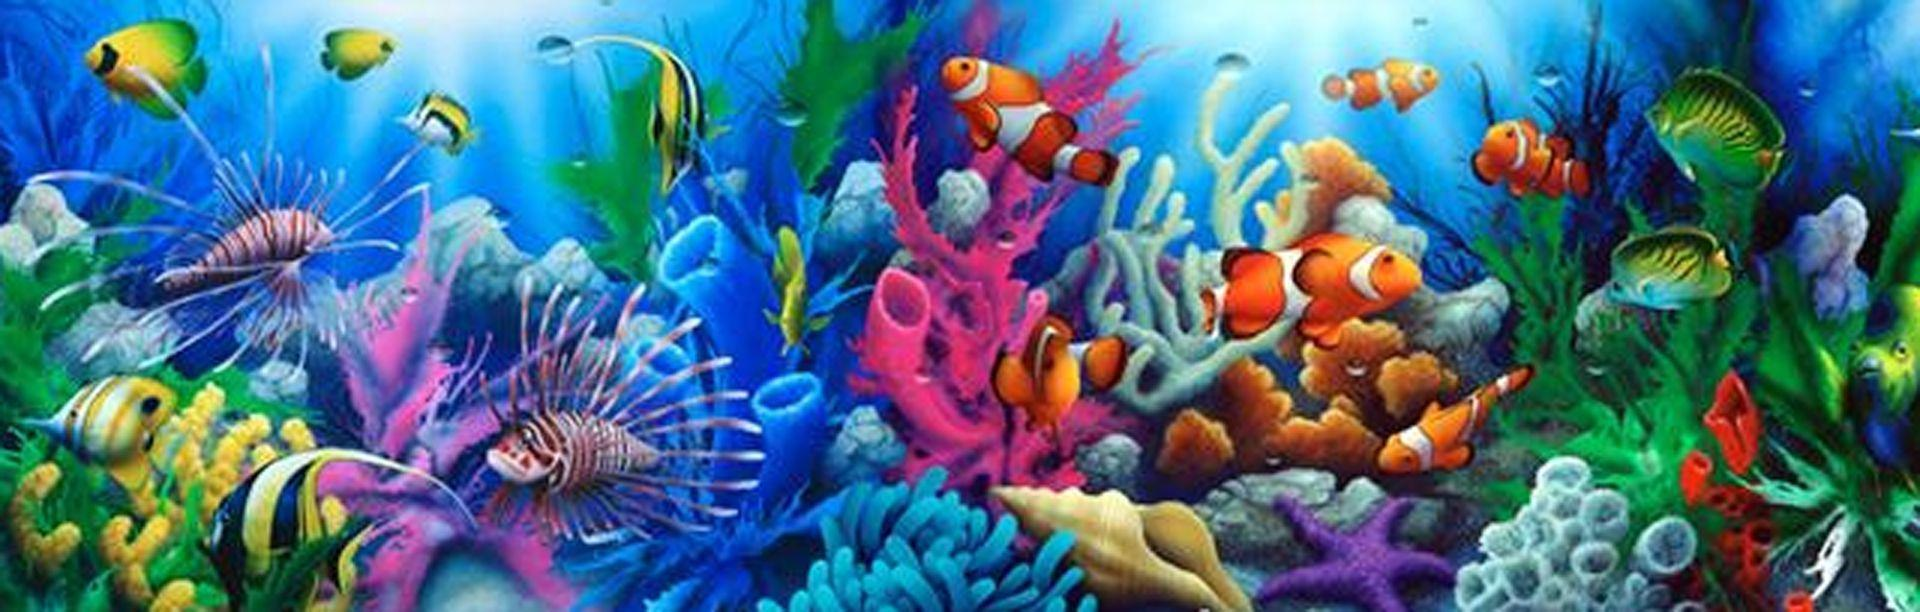 tropical coral reef mural | Wallpaper Murals